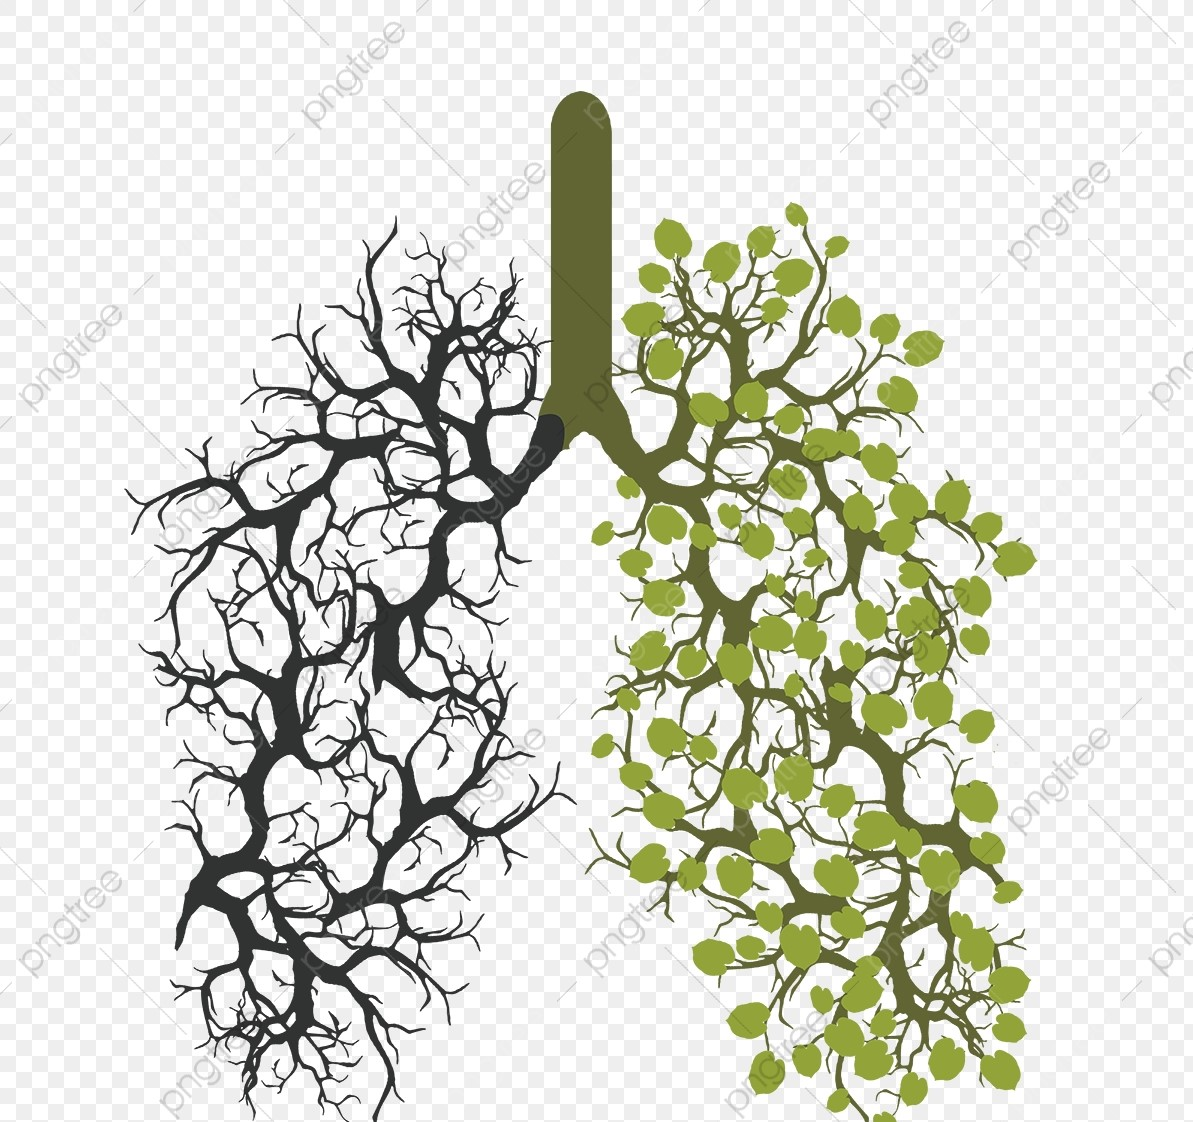 pngtree-vector-creative-lung-pattern-png-image_1309531